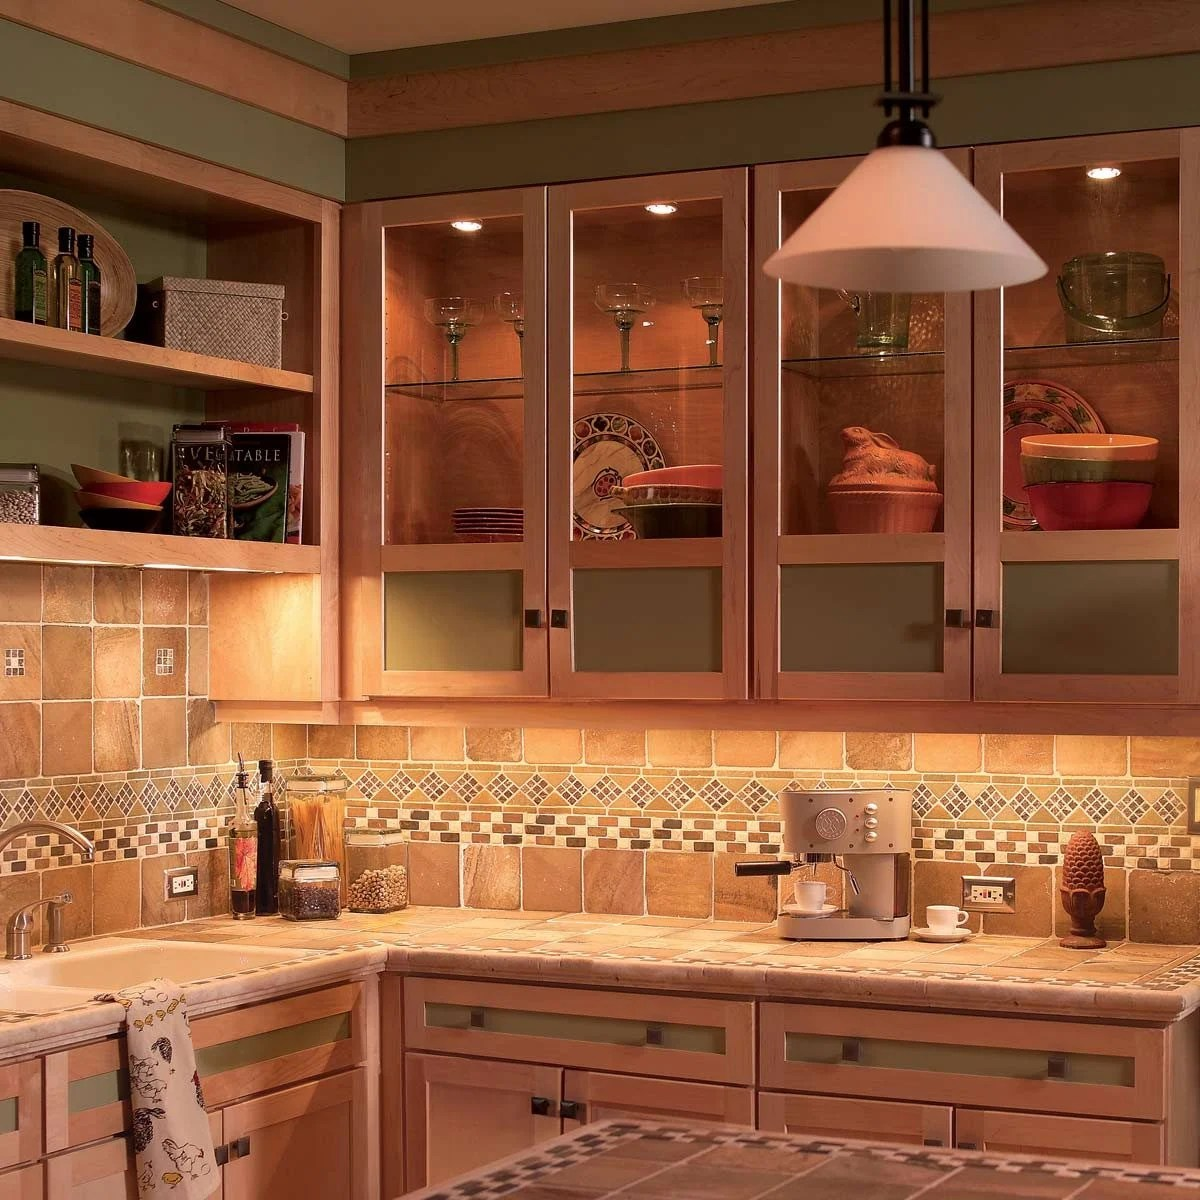 Rope Lights Above Cabinets In Kitchen How To Install Under Cabinet Lighting In Your Kitchen The Family